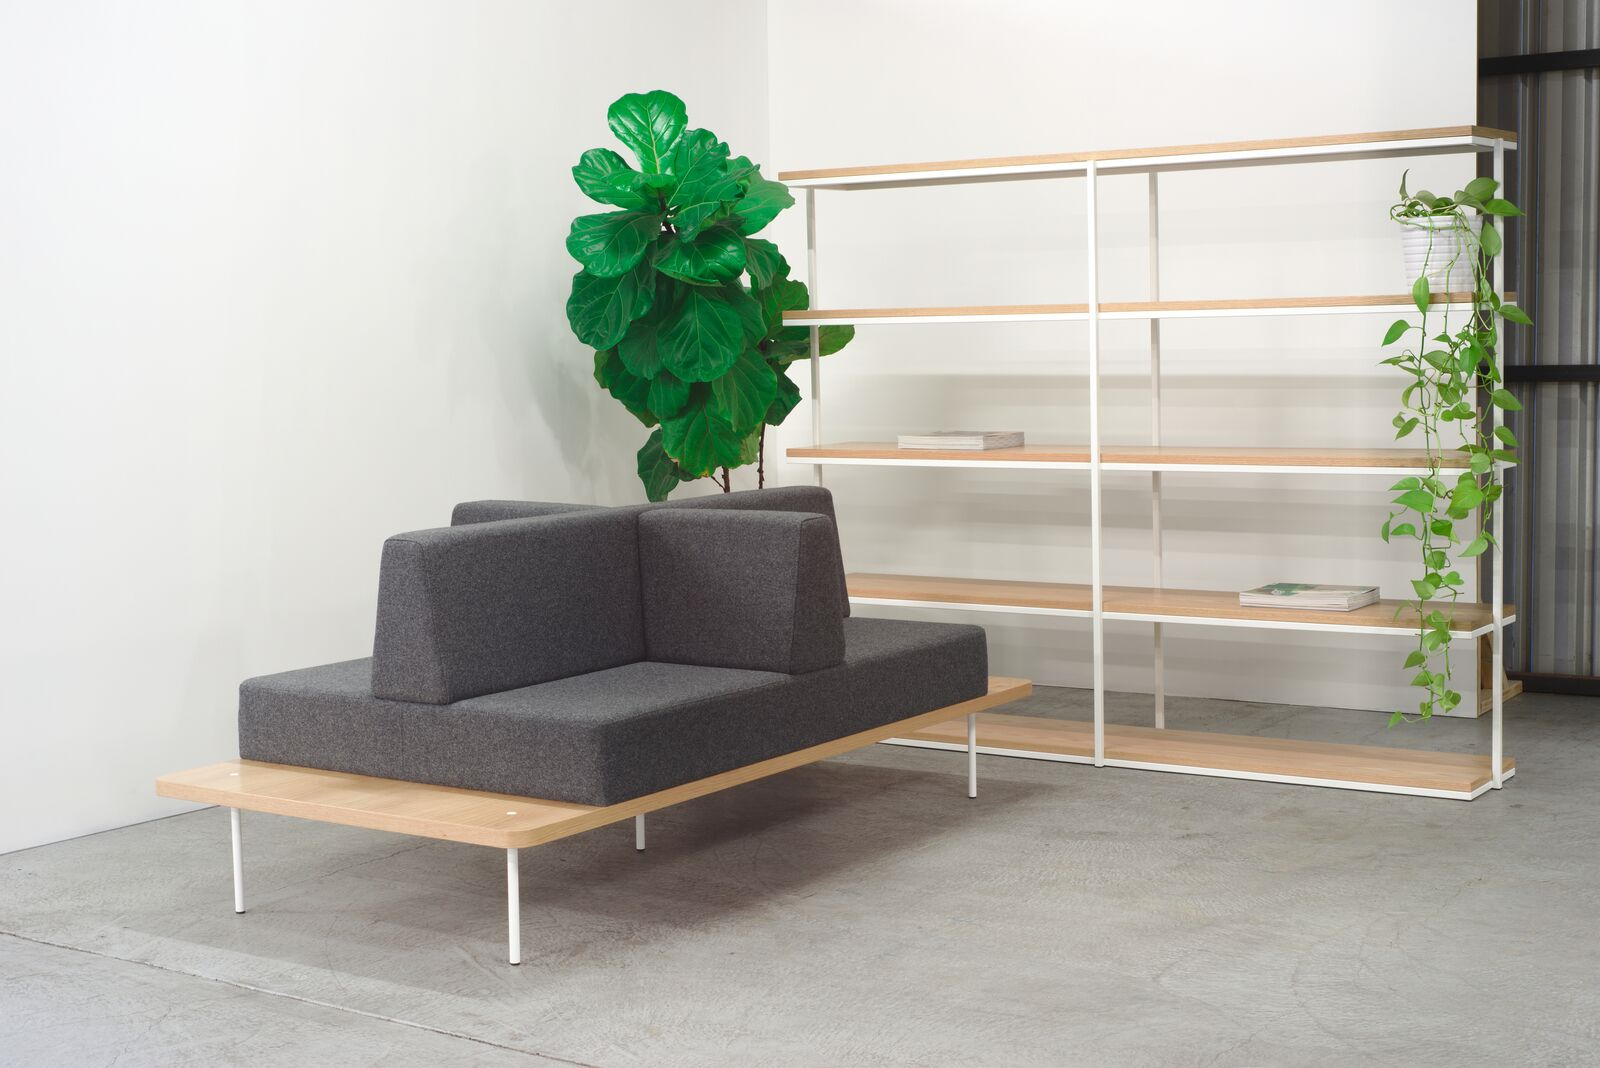 Local Australian Commercial Office Furniture